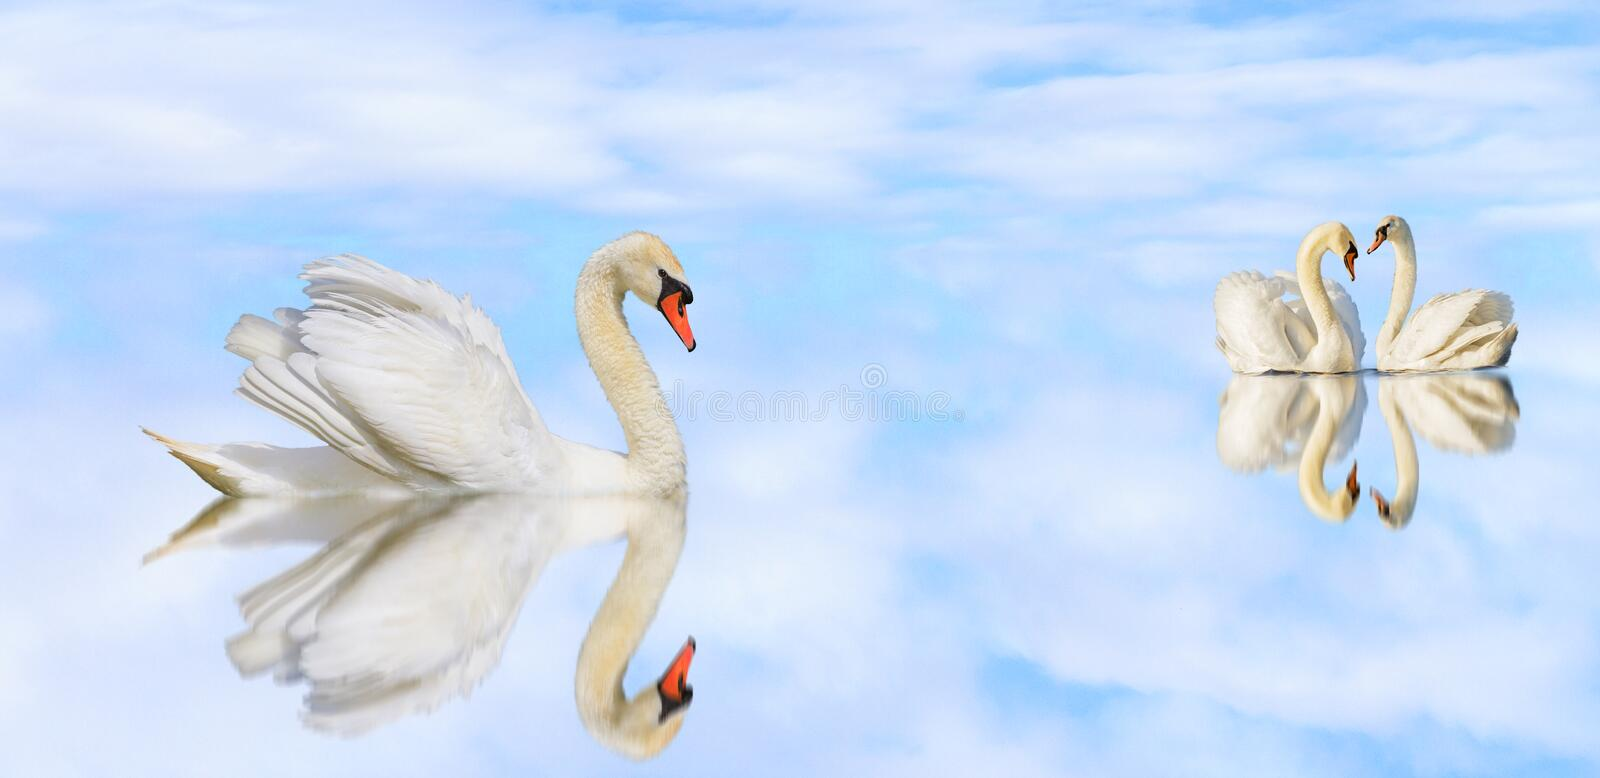 Beautiful white swans on a quiet lake with reflection royalty free stock photos